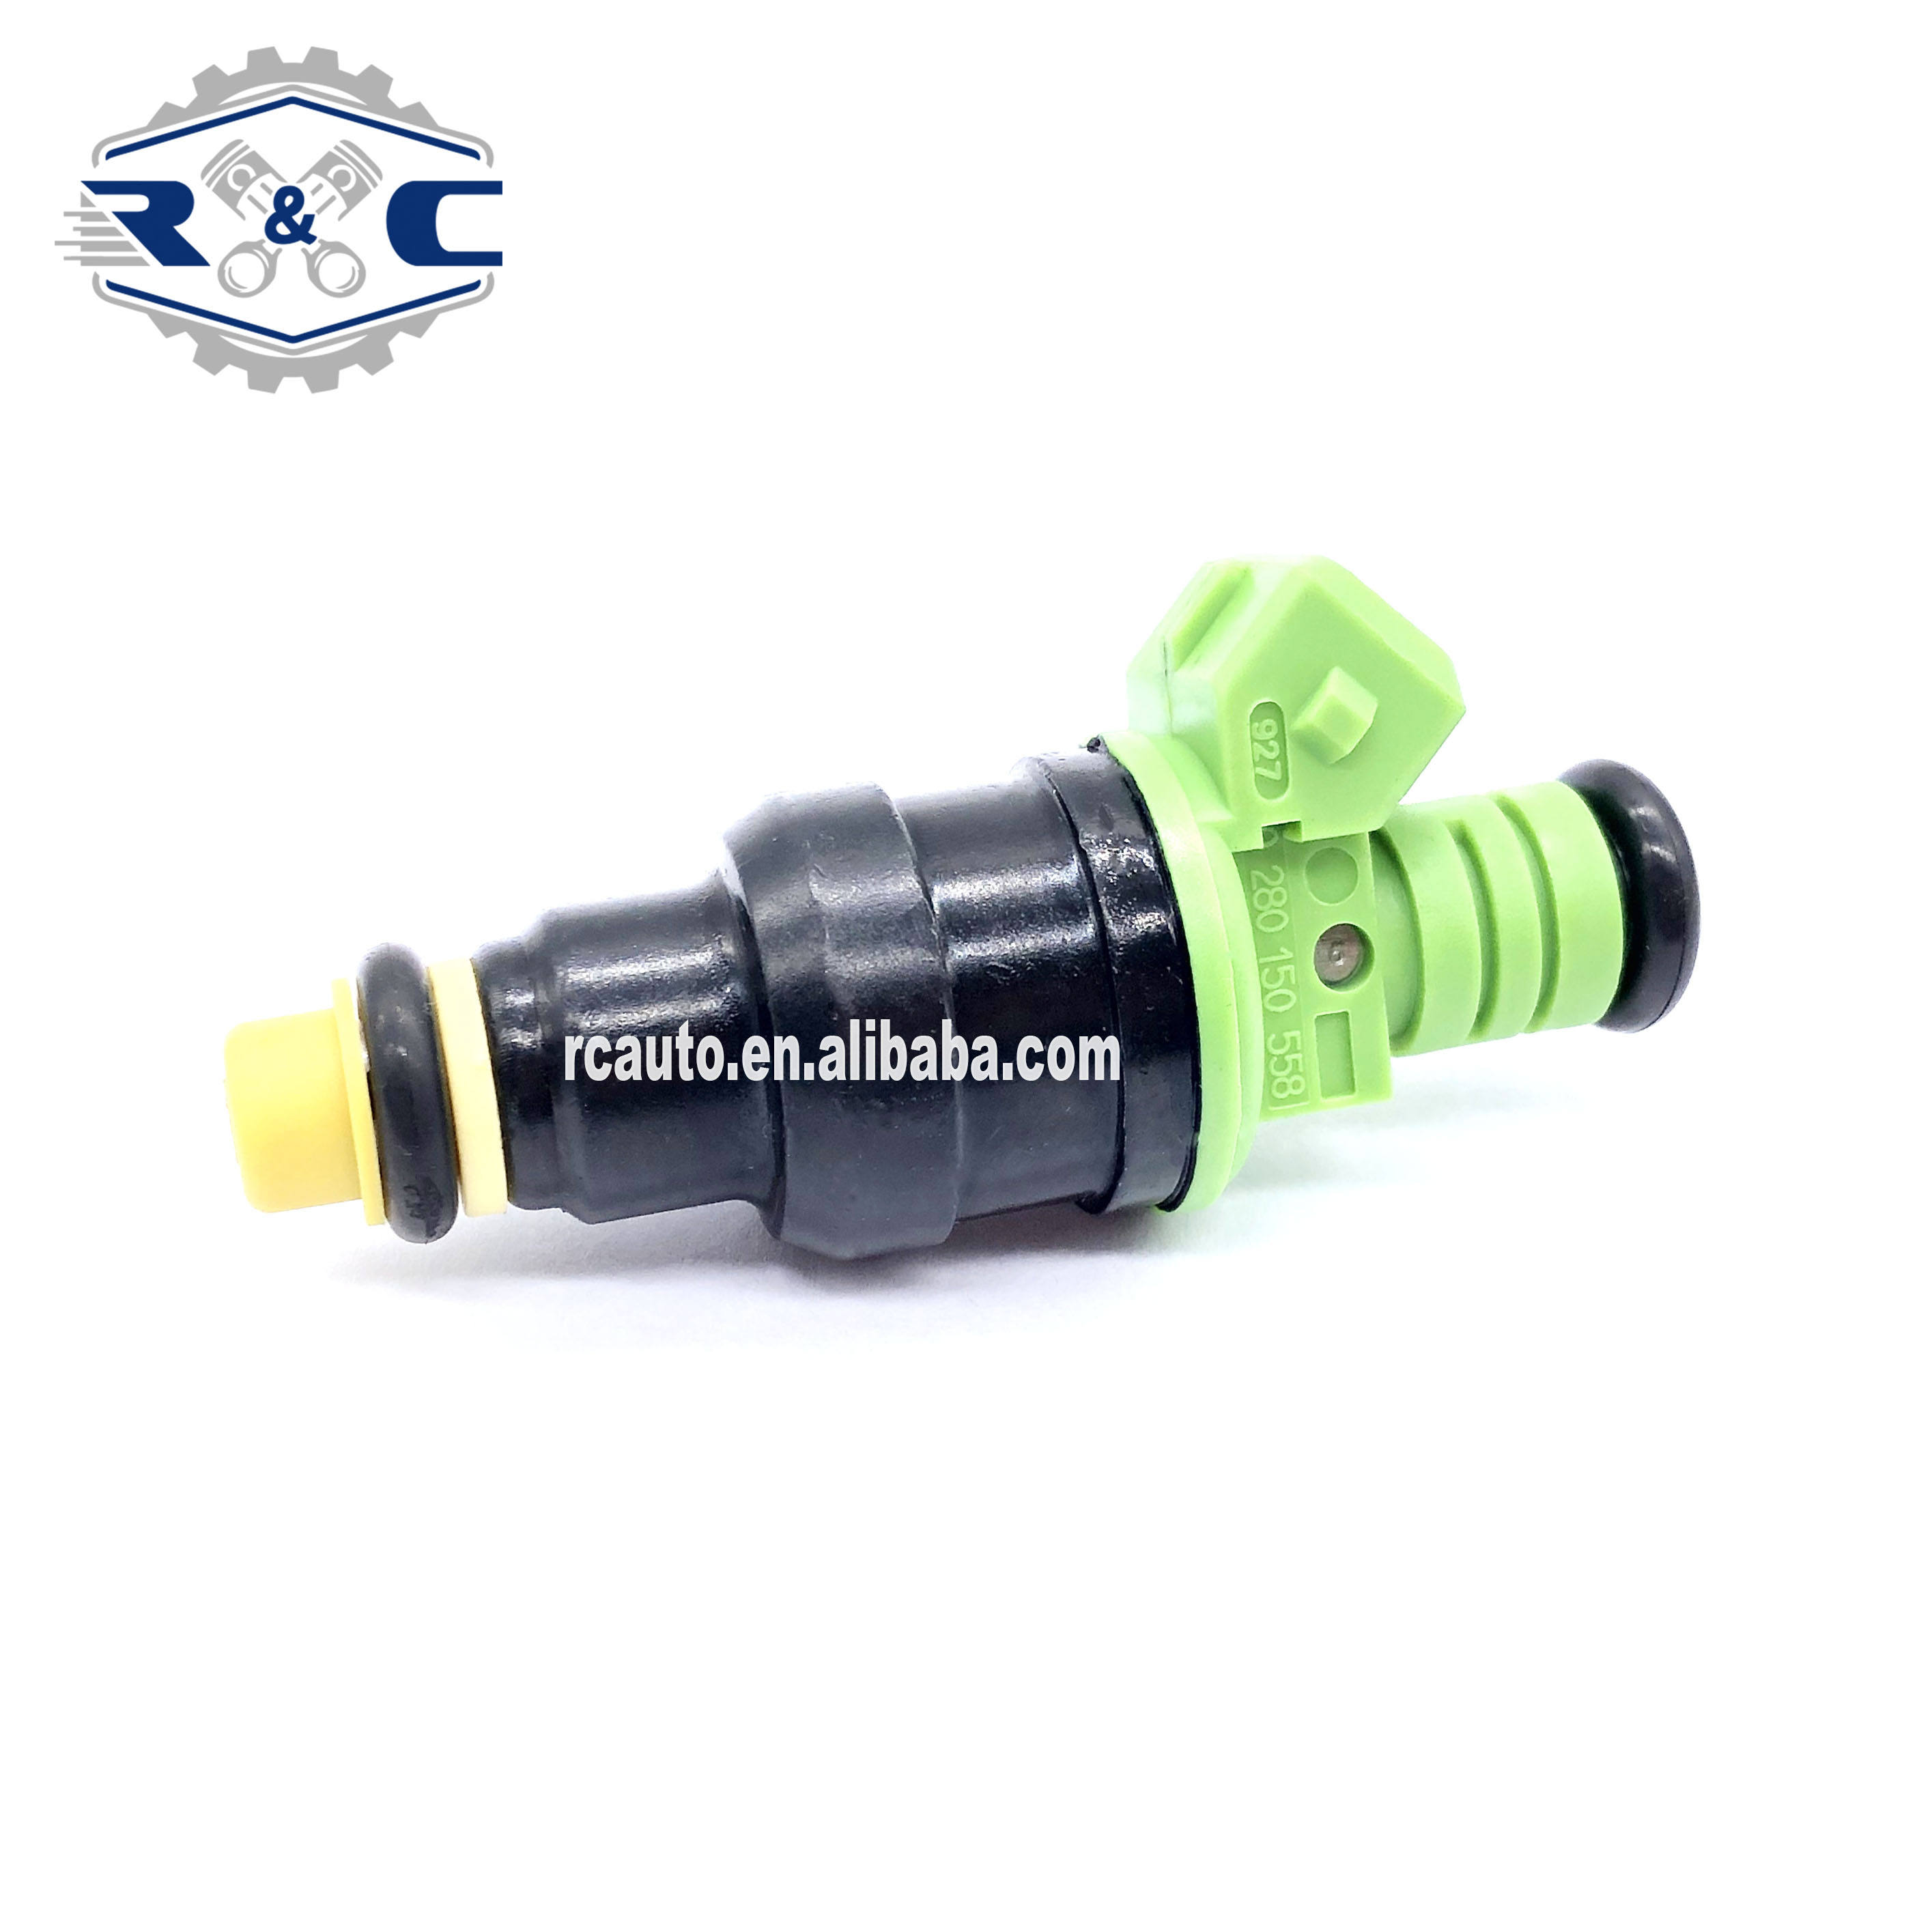 R&C High Quality Injection 0280150558 Nozzle Auto Valve For vw Audi Chevrolet 100% Professional Tested Gasoline Fuel Injector